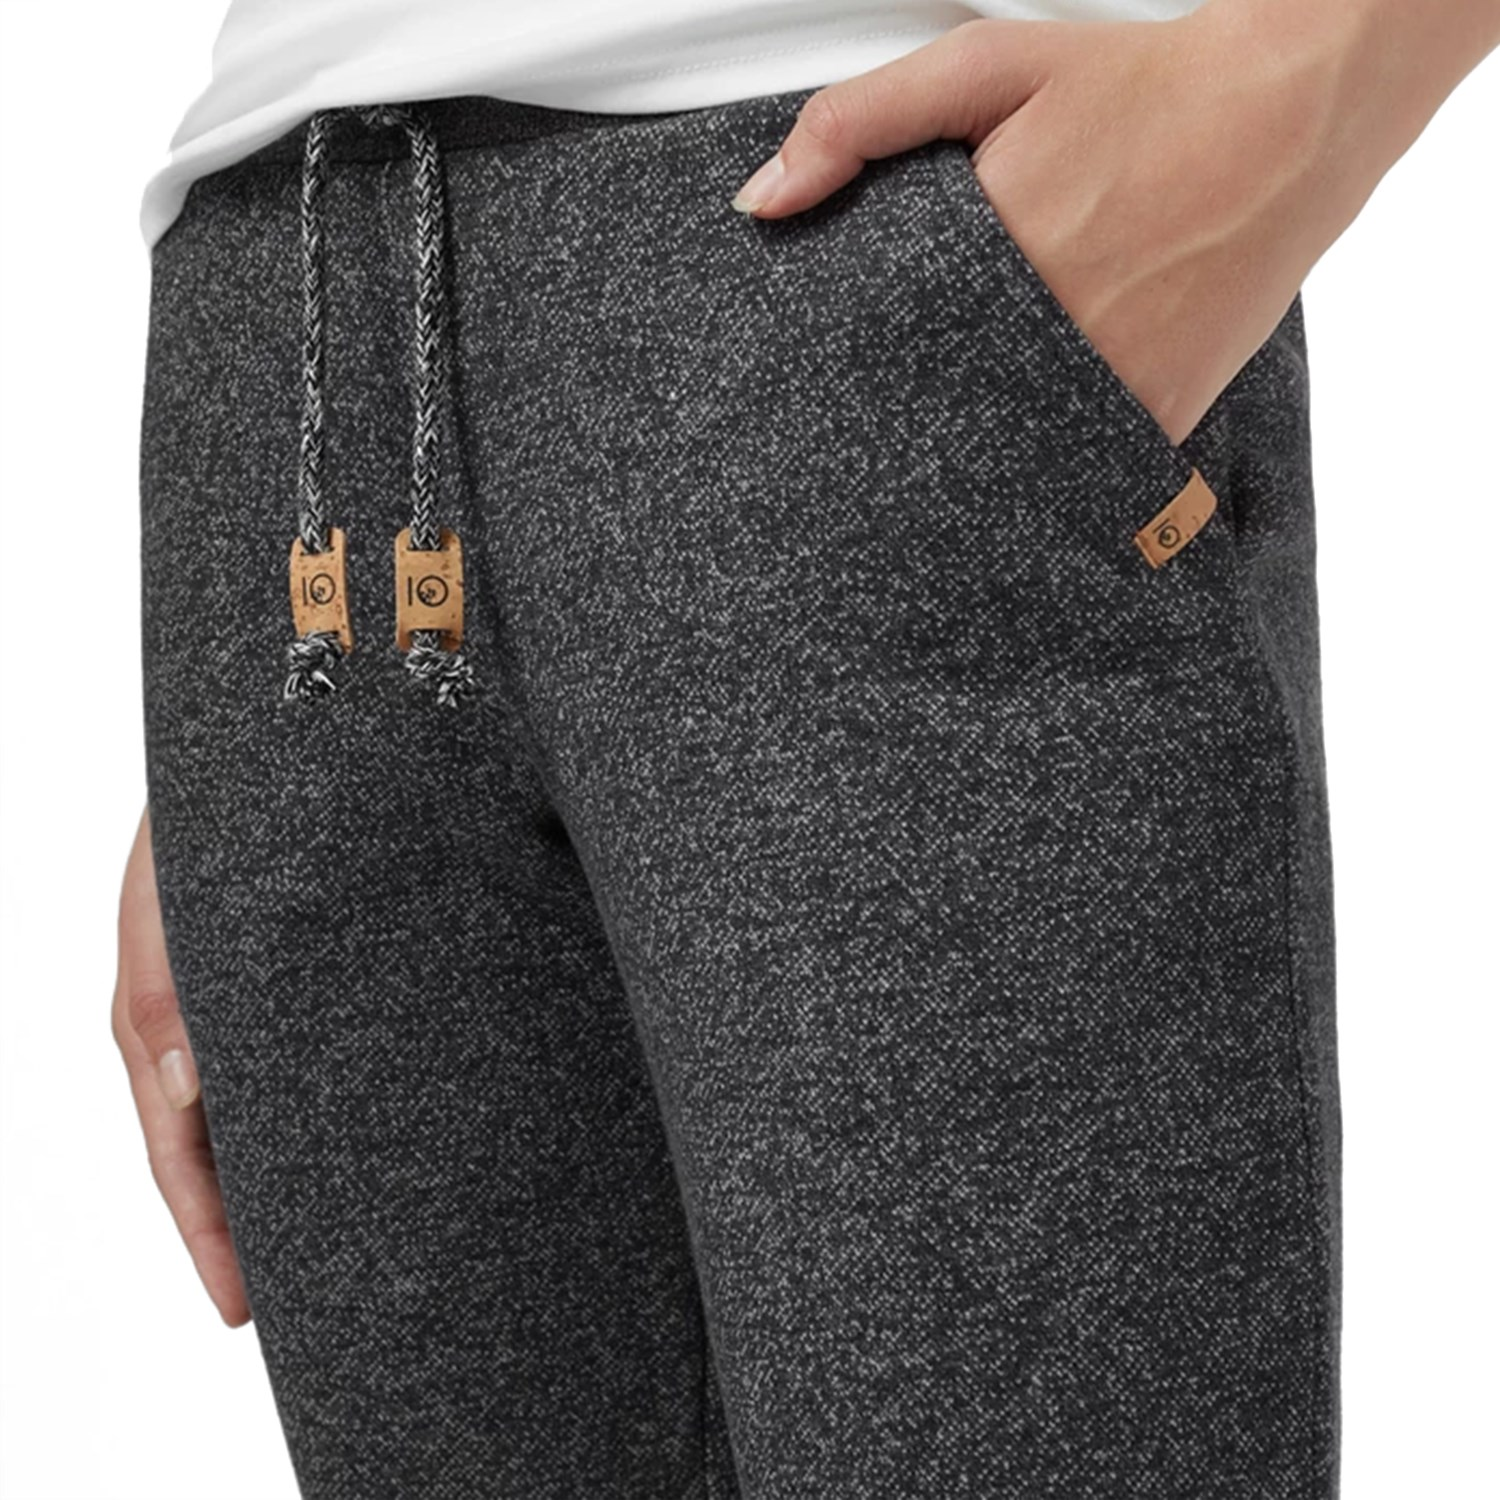 Tentree Bamone Sweatpants Women's